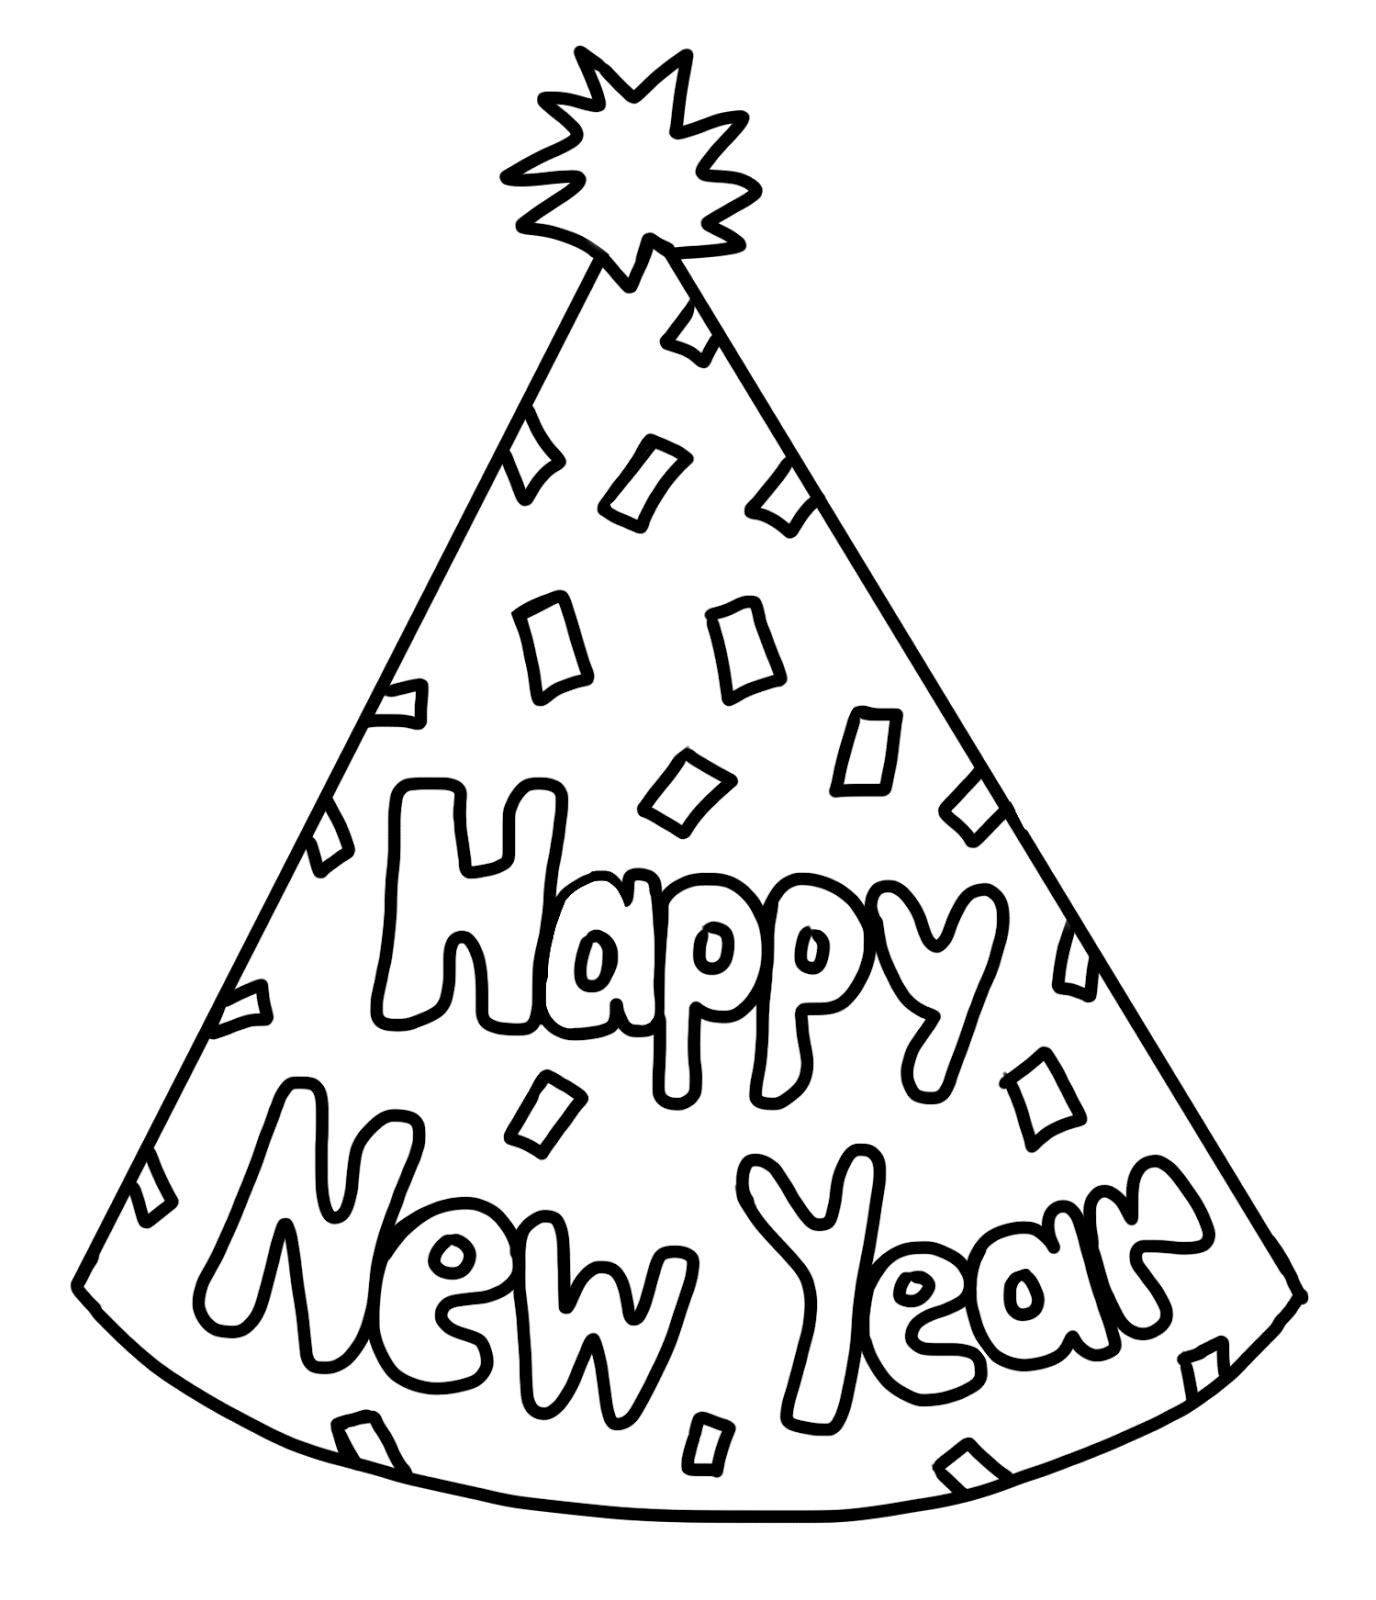 C C Teach First Happy New Year Party Hat Freebie New Year Coloring Pages New Year S Eve Crafts New Years Hat